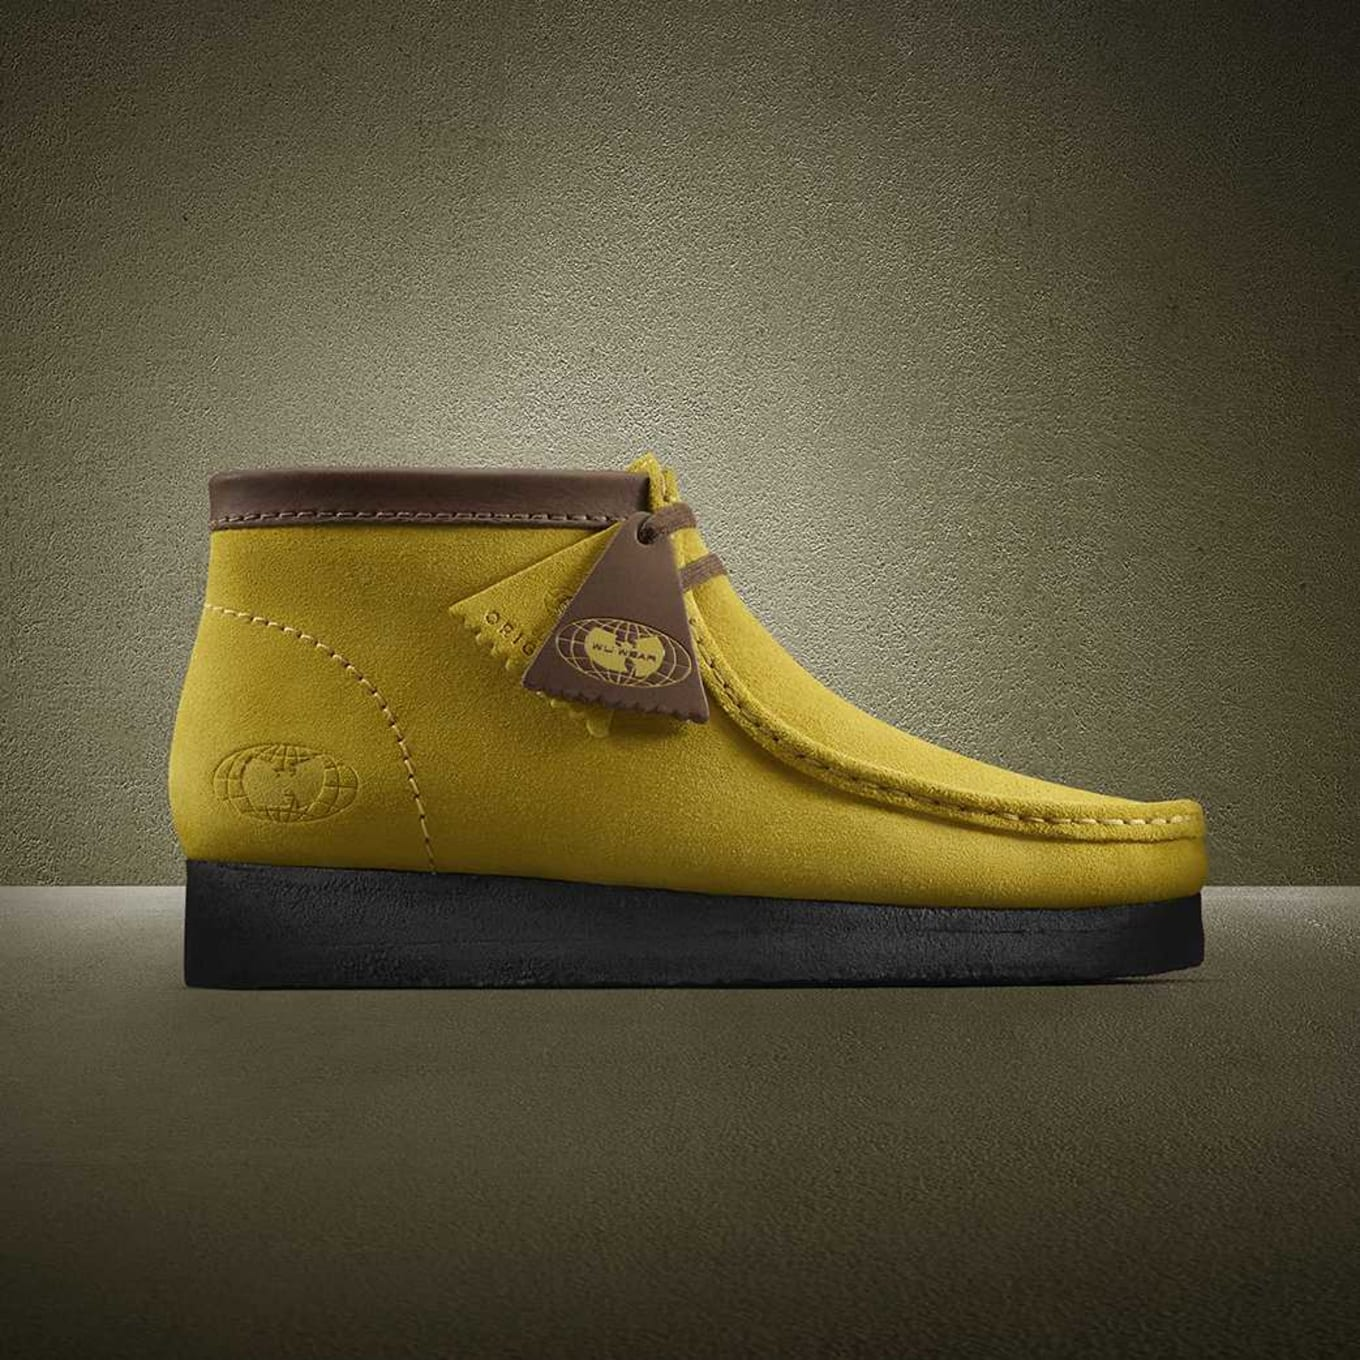 Wu Wear X Clarks Wallabees 25th Anniversary Yellow Sole Collector